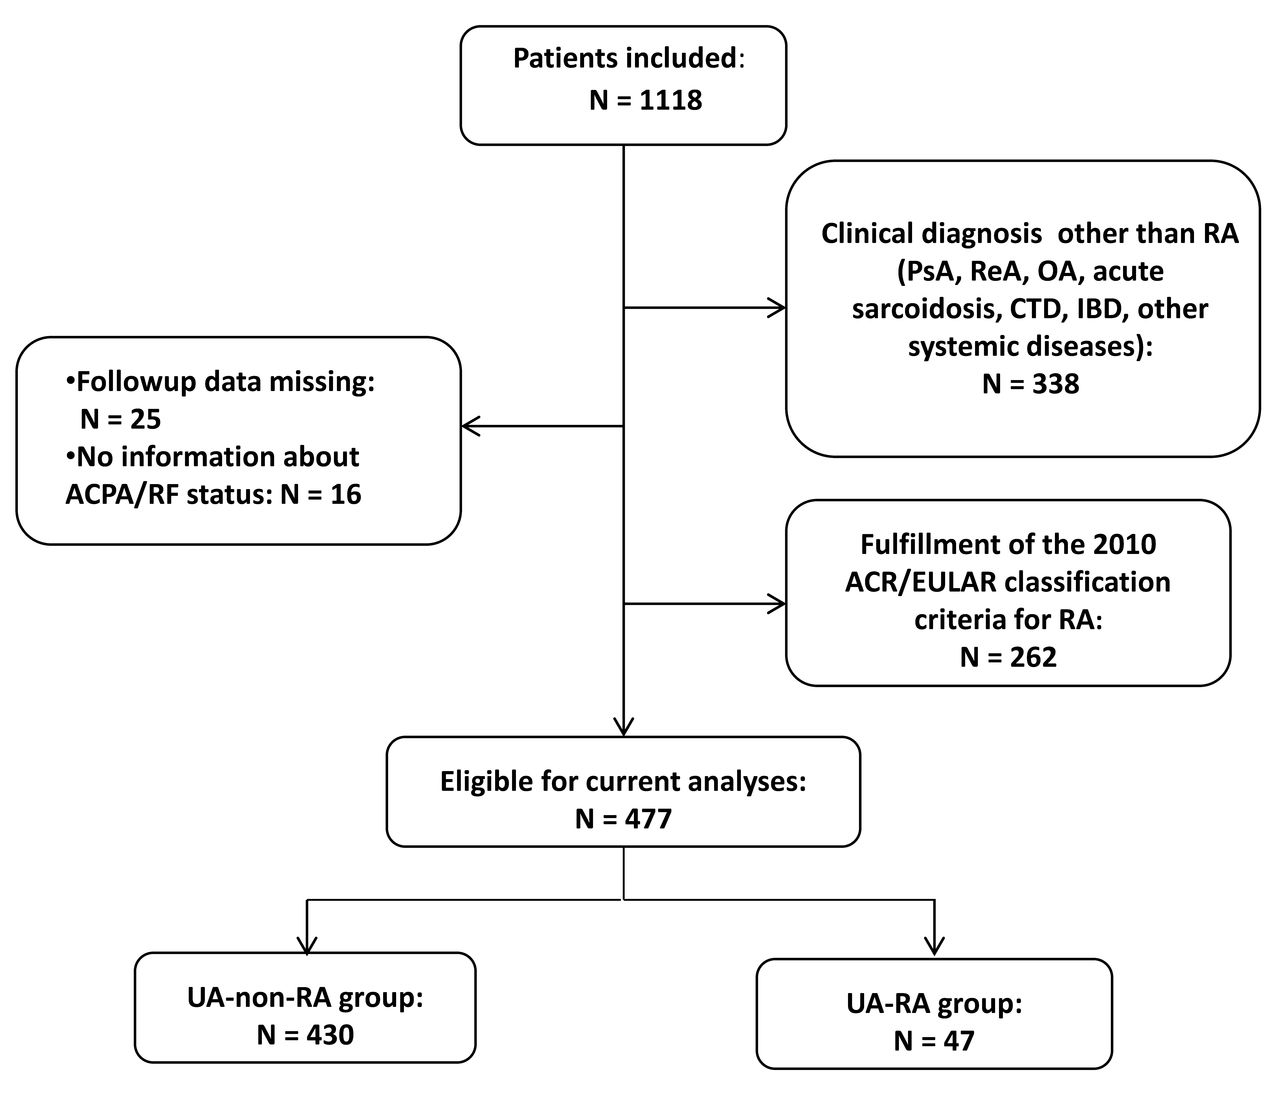 Disease Characteristics And Rheumatoid Arthritis Development In Patients With Early Undifferentiated Arthritis A 2 Year Followup Study The Journal Of Rheumatology